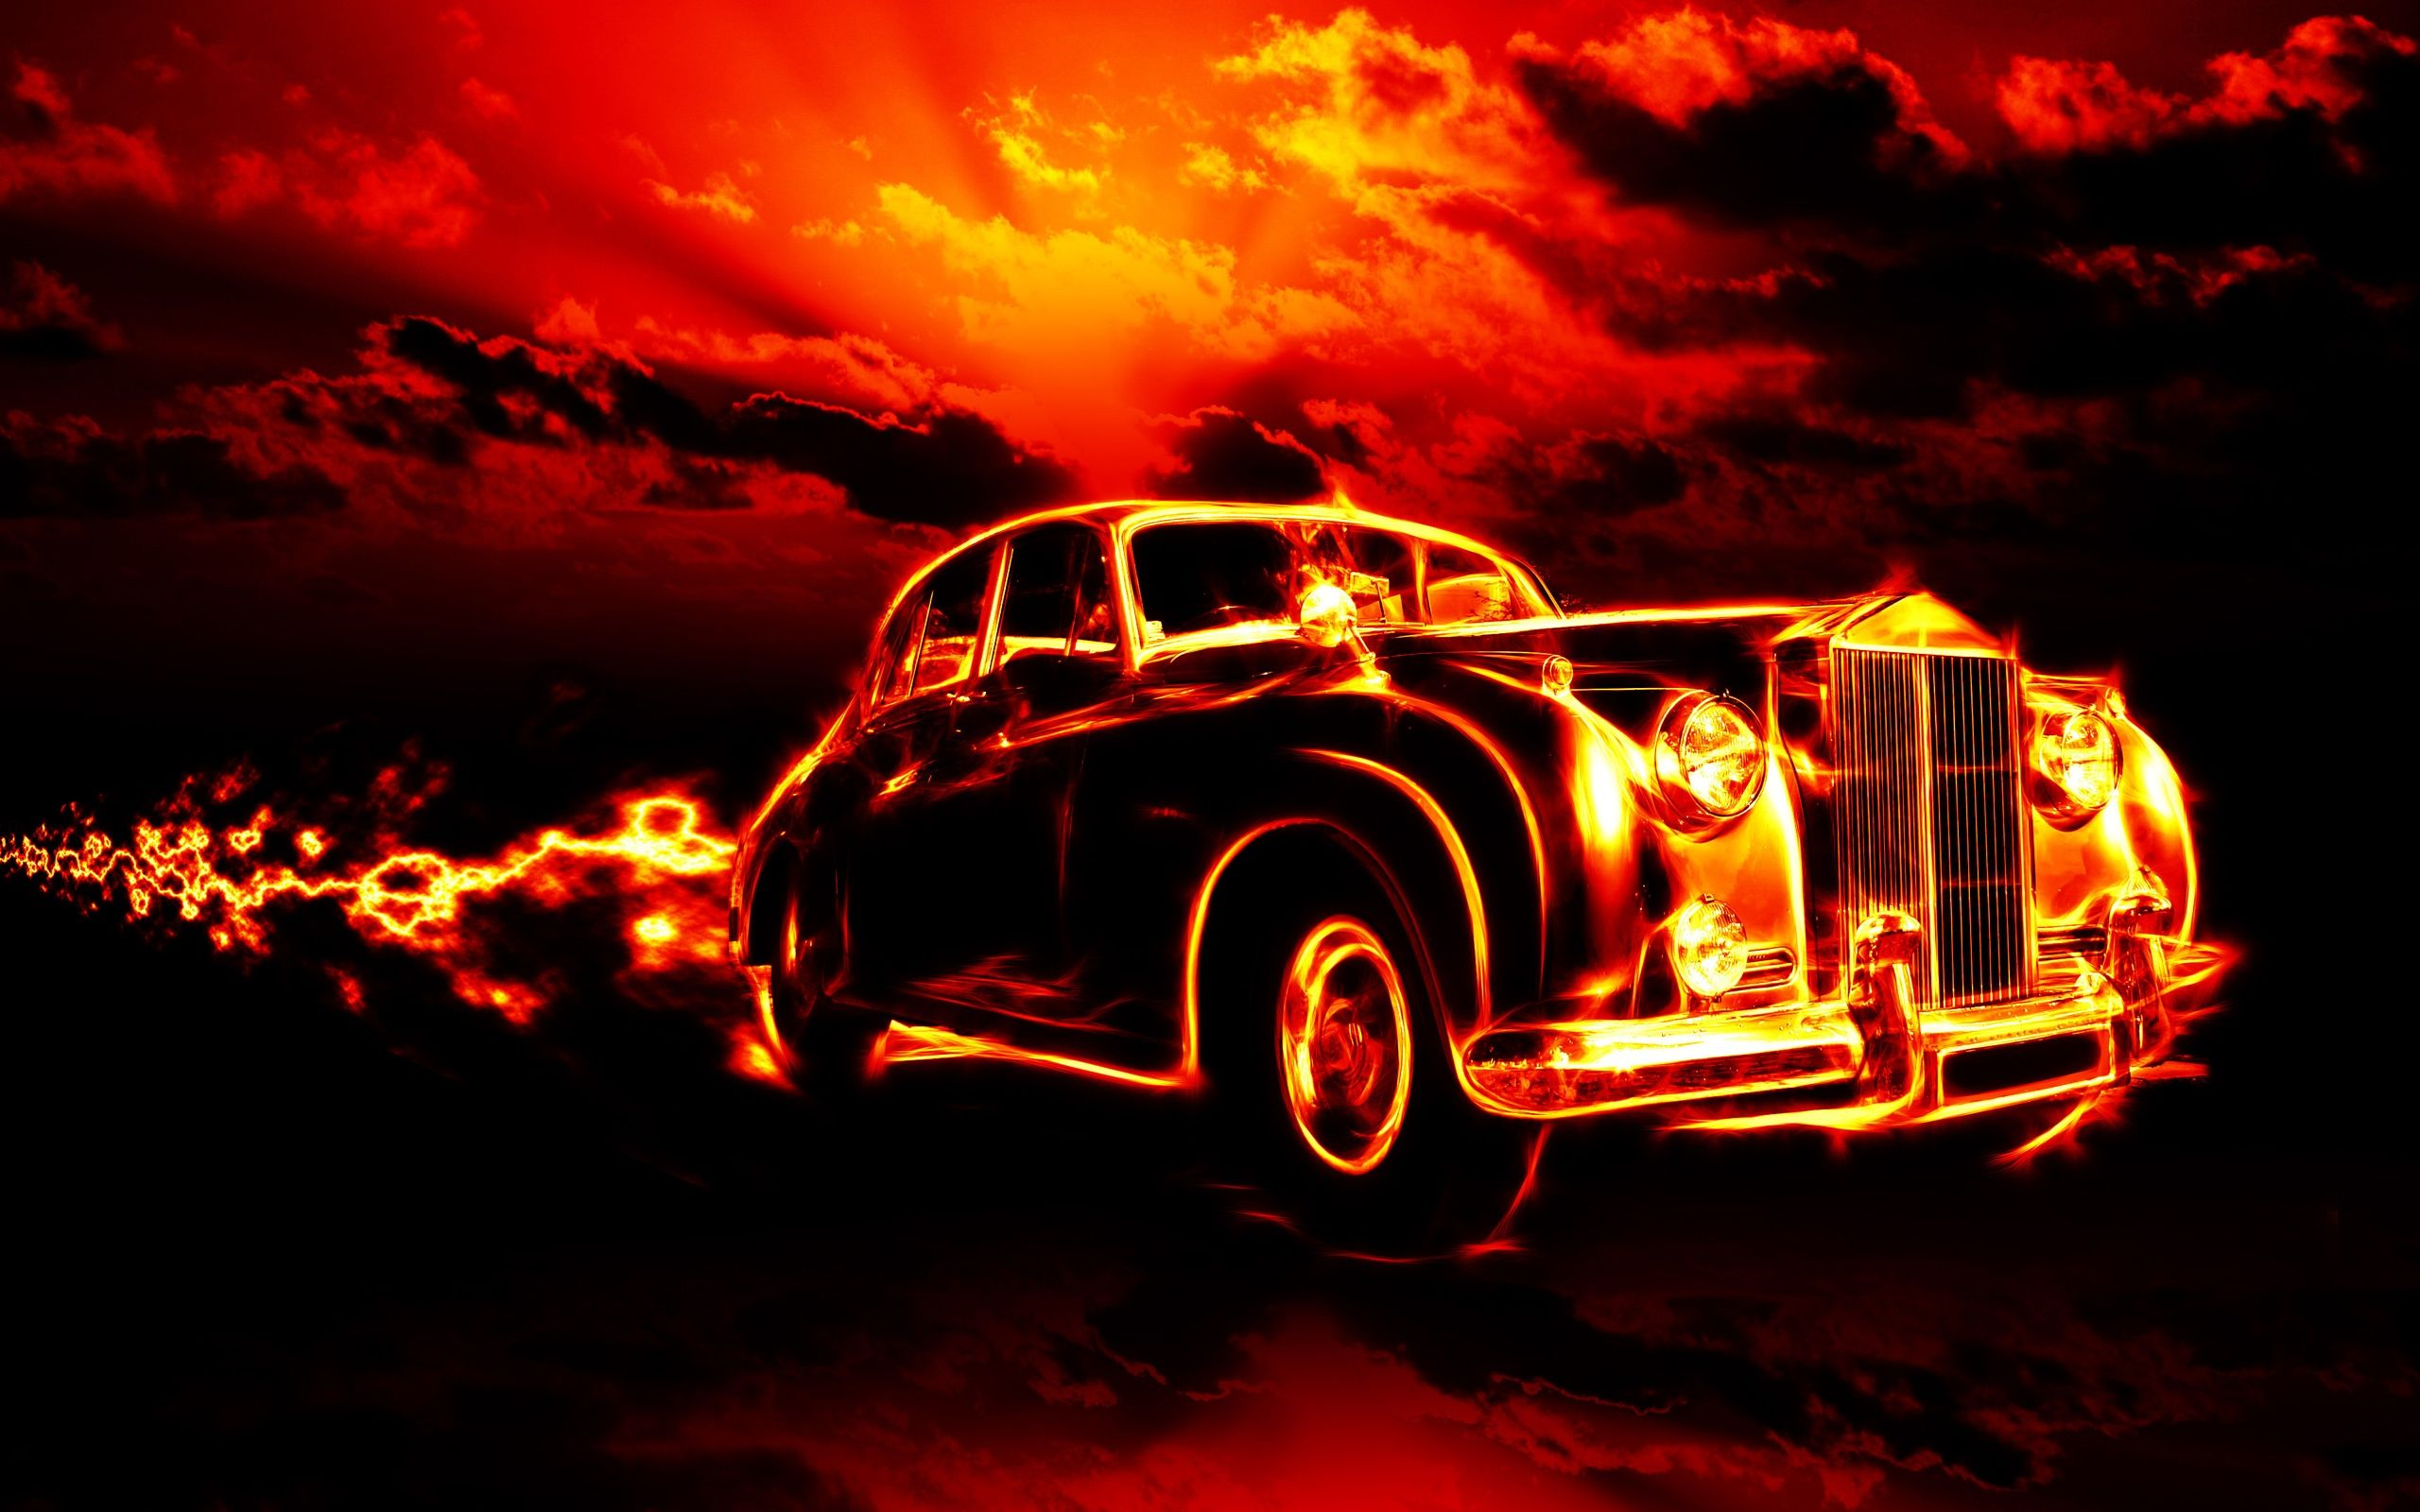 Fire car creative Wallpaper | 2560x1600 resolution wallpaper